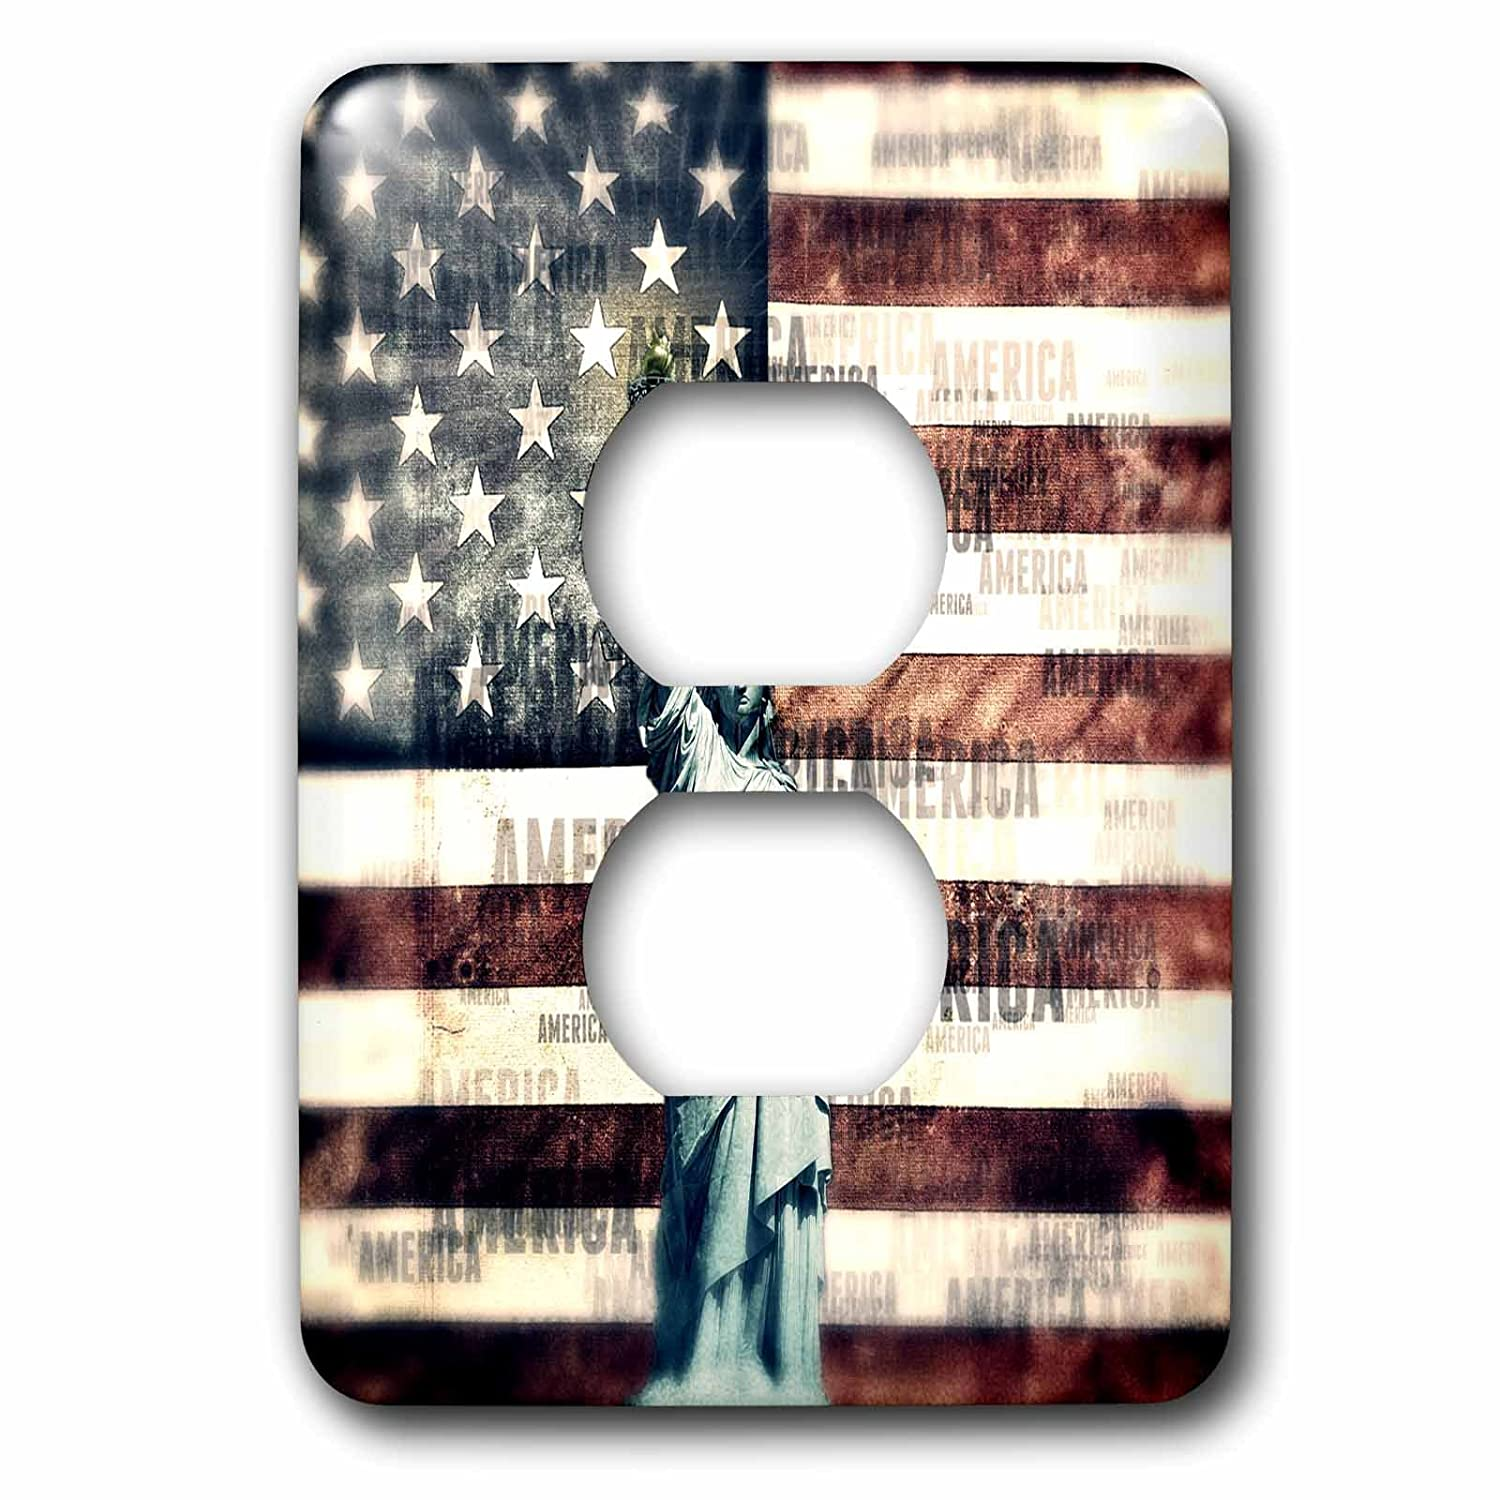 3dローズLSP 243444 _ 6 Vintage Patriotic Statue of Liberty with American Flag 2プラグコンセントカバー B01LYU9MGD